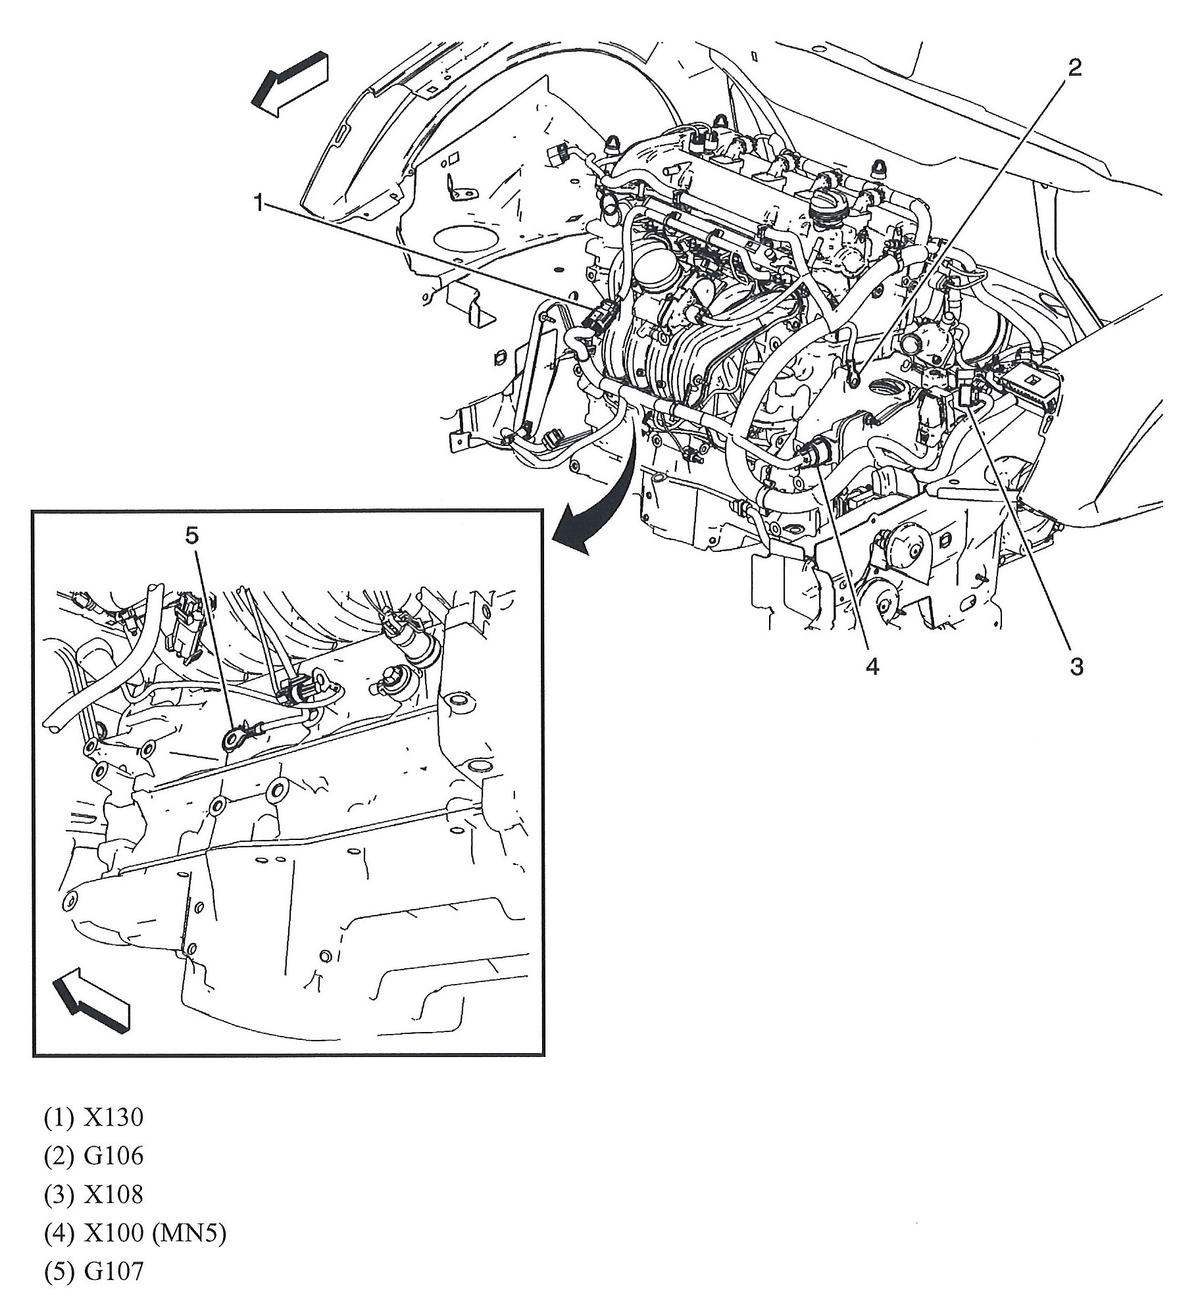 Chevy Impala Battery On Engine Diagram Chevy